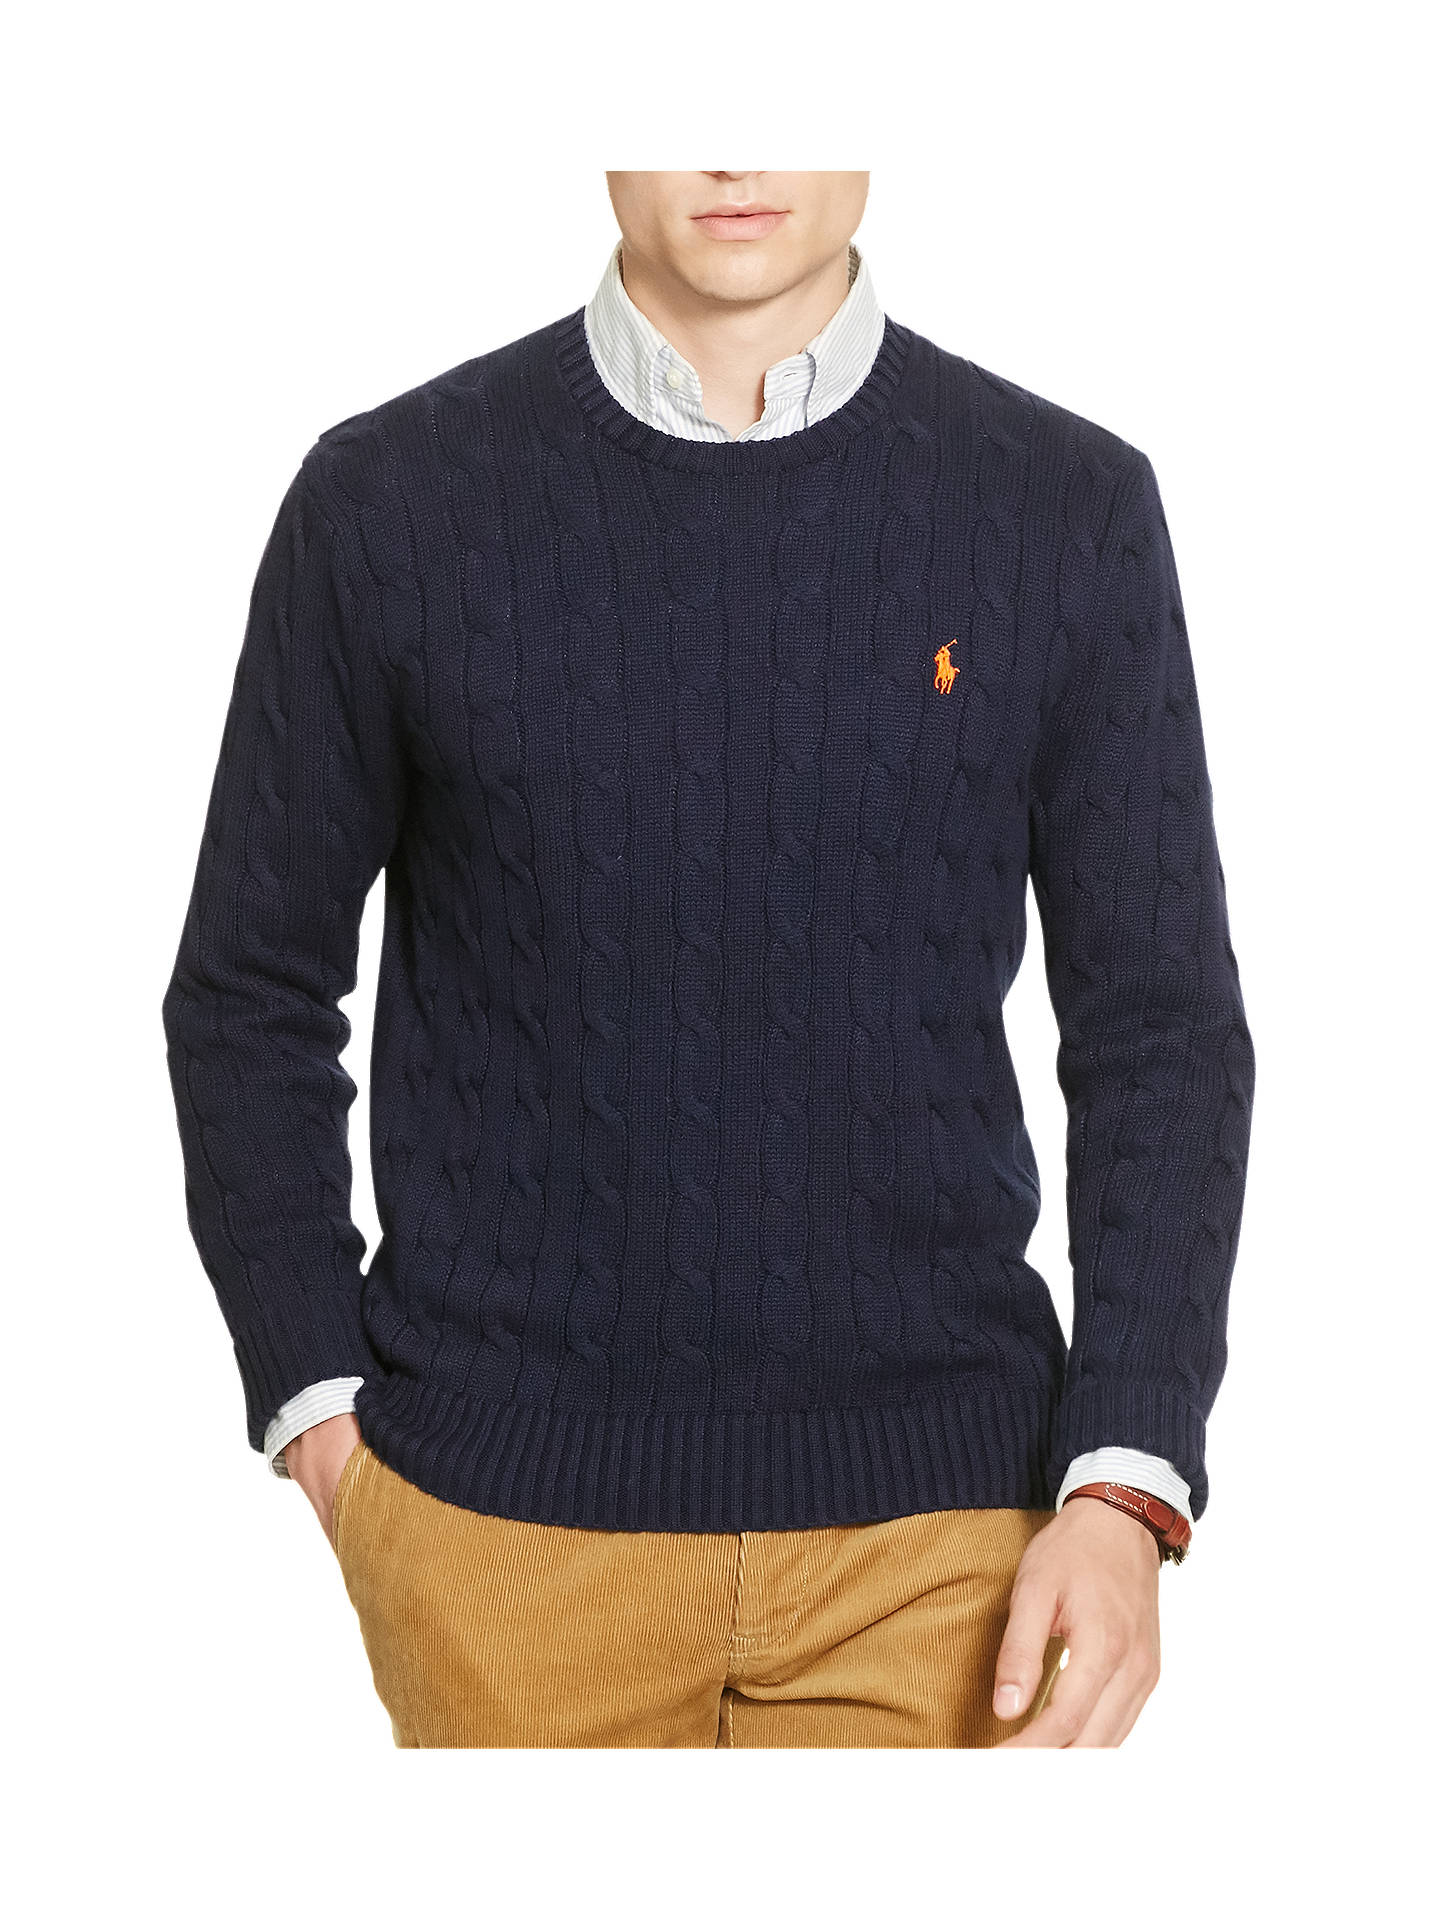 acac329d1 Buy Polo Ralph Lauren Cable Knit Crew Neck Jumper